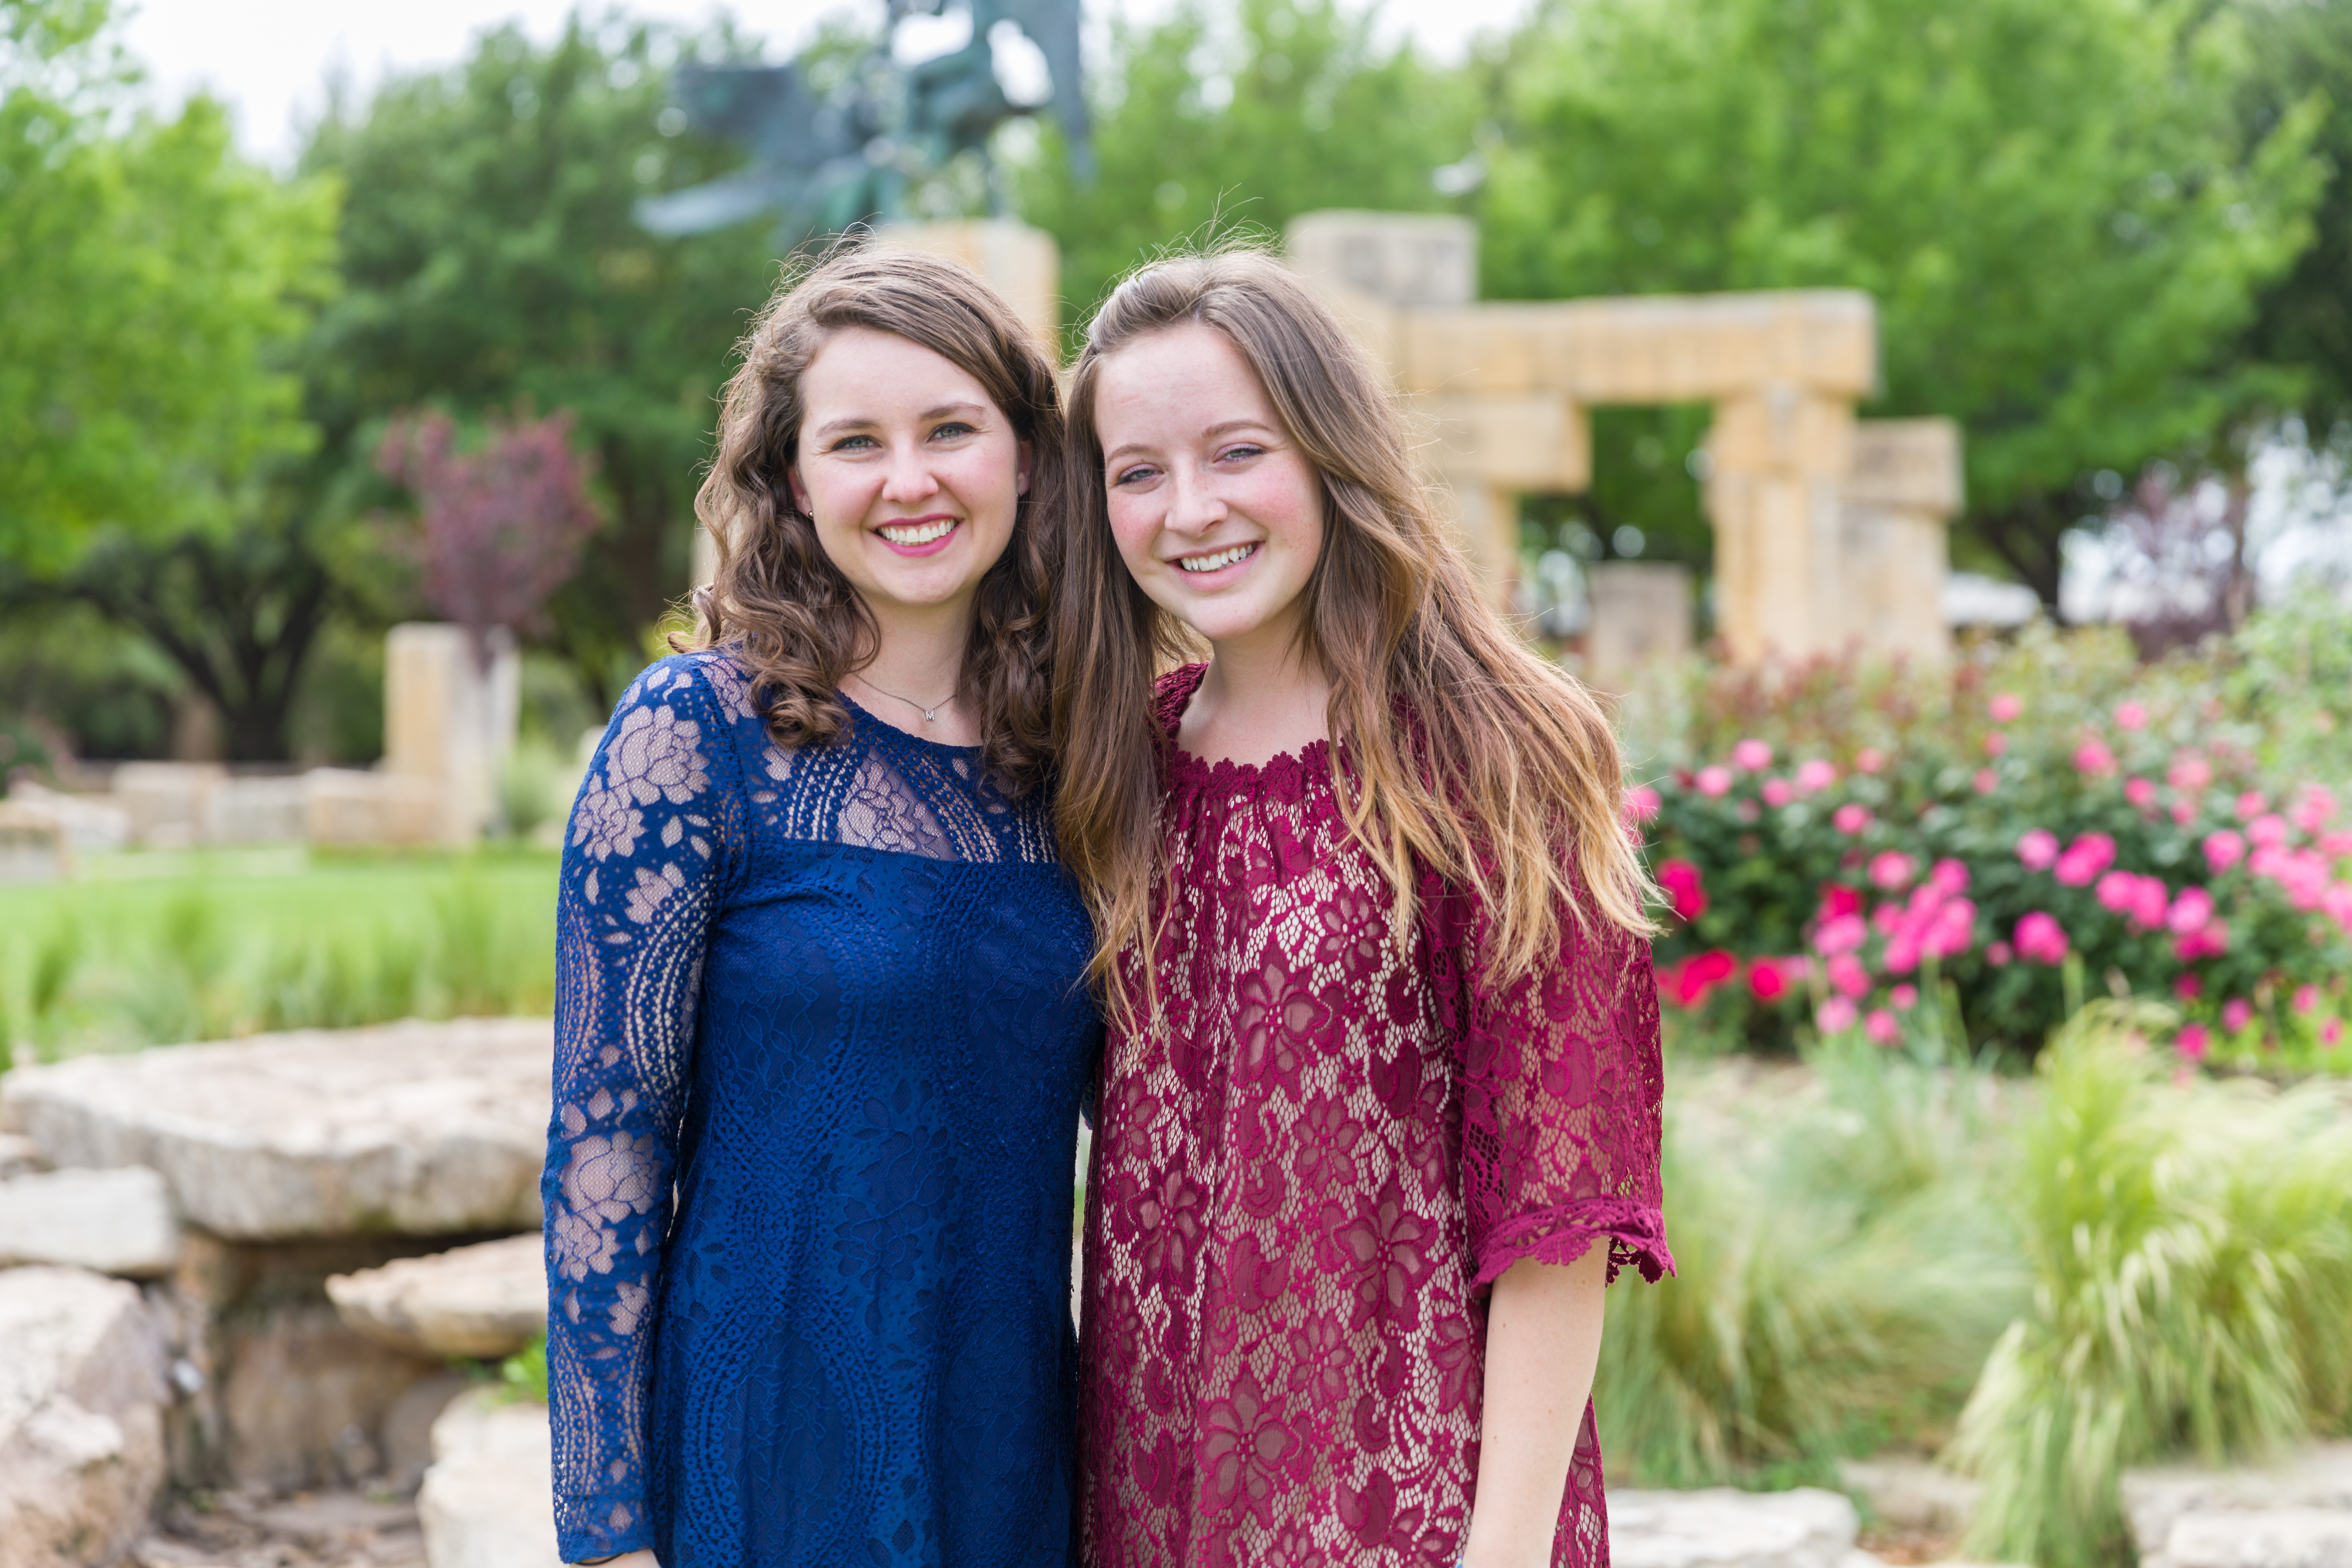 Mackenzie Sanderson, left, and Lindsie Lawson made history when both received Fulbright Scholar Awards, the first time for two ACU students to receive the honor in the same year.